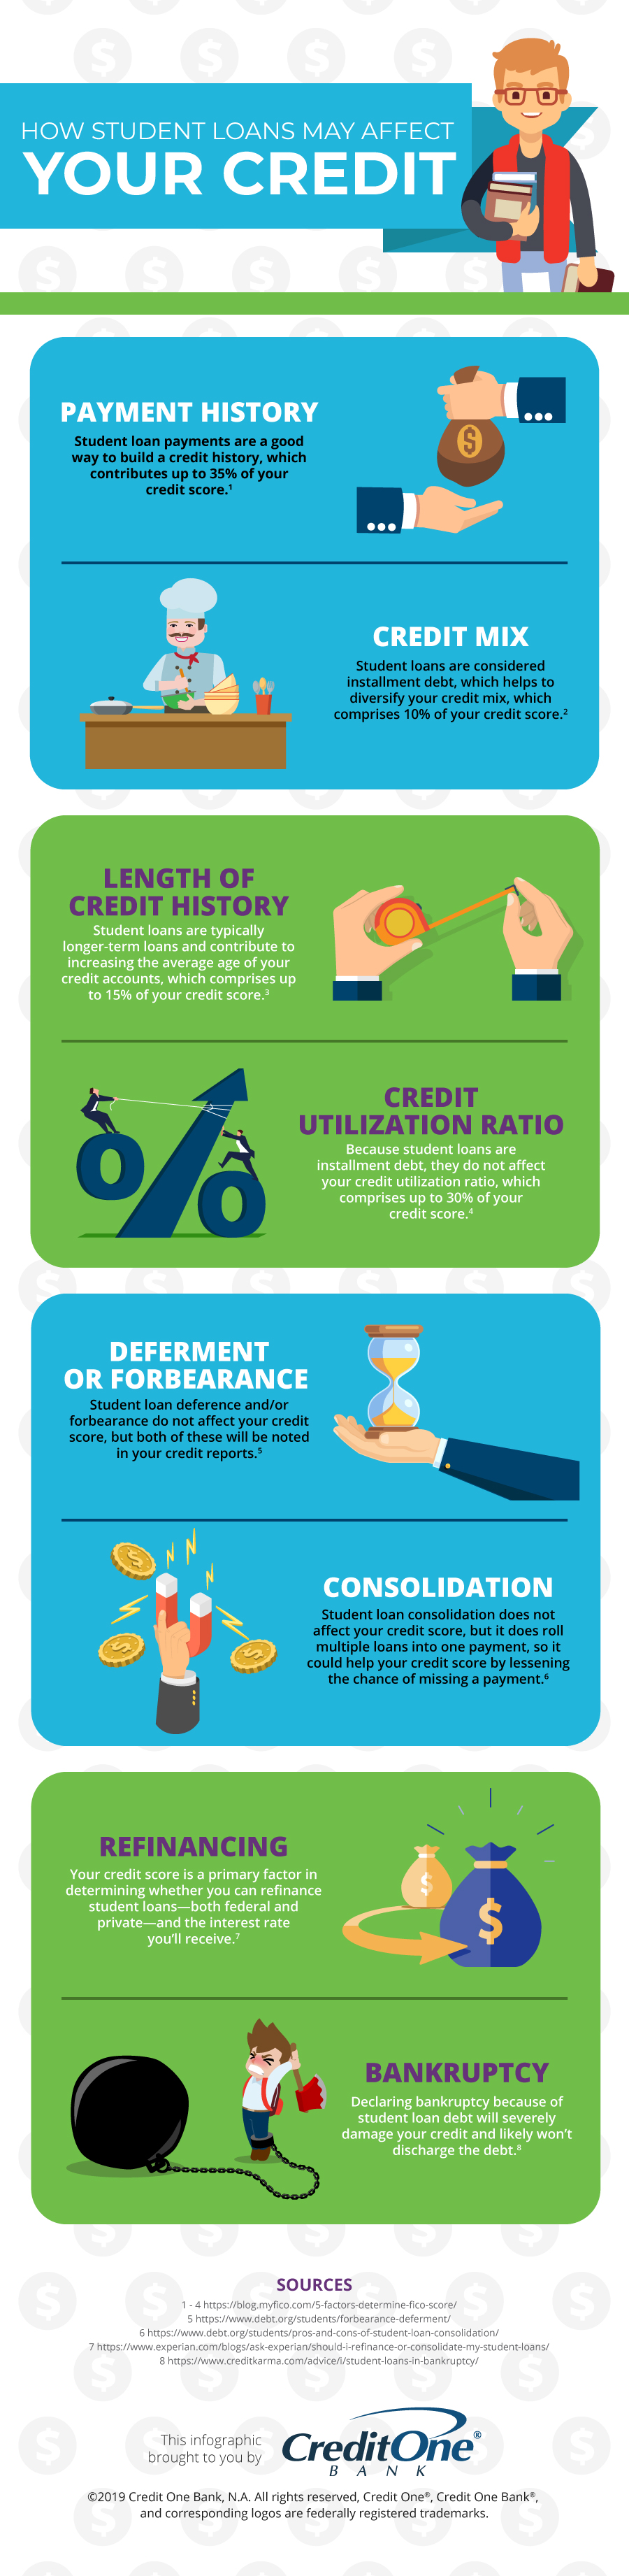 How Student Loans Affect Credit [Infographic]